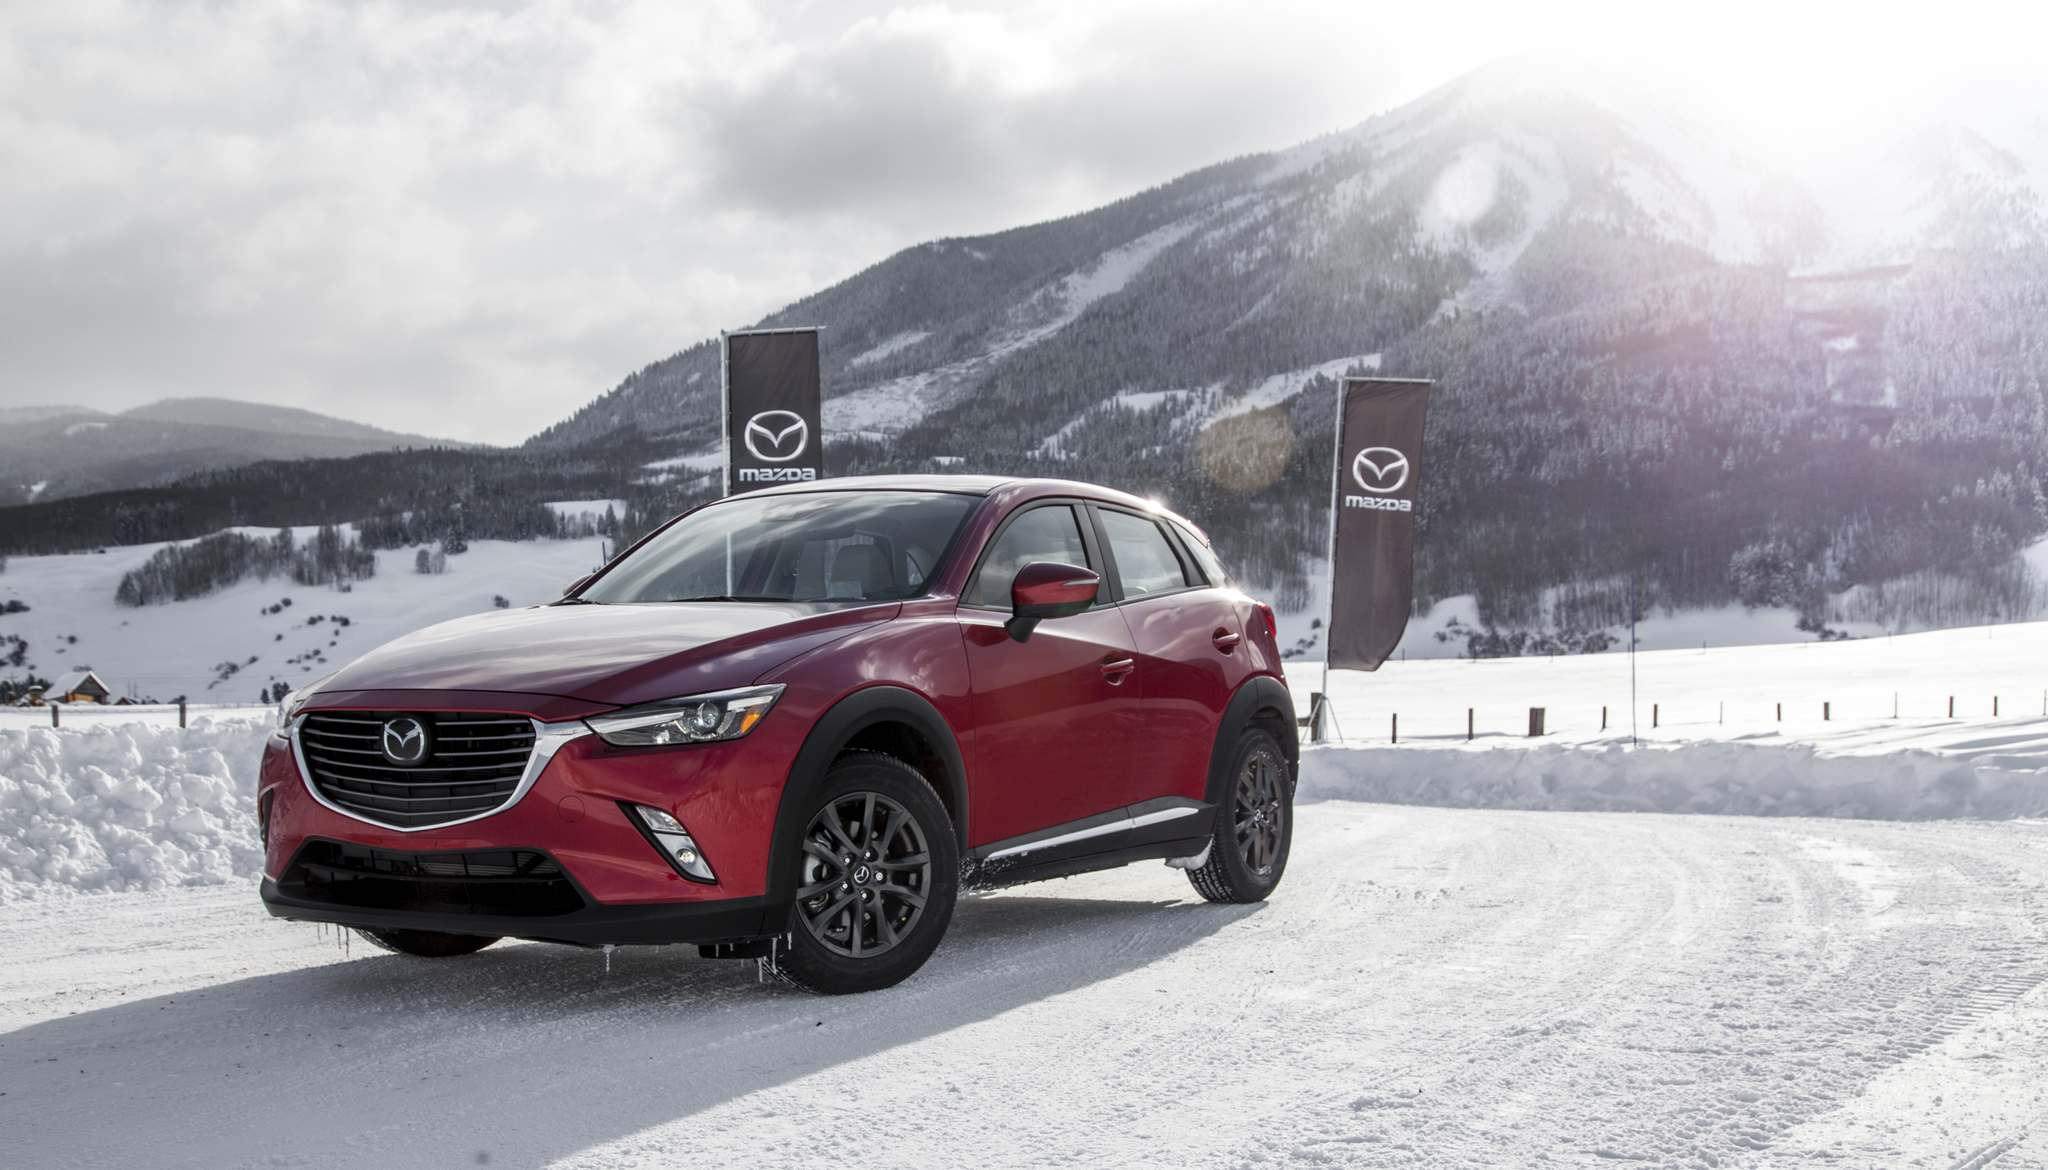 Mazda G-Vectoring Control, Smart City Brake Support, hill start assist, tire pressure monitoring, push-button start, cruise control, Bluetooth, a seven-inch display, rear-view camera and auto-off headlights are standard with the GX.